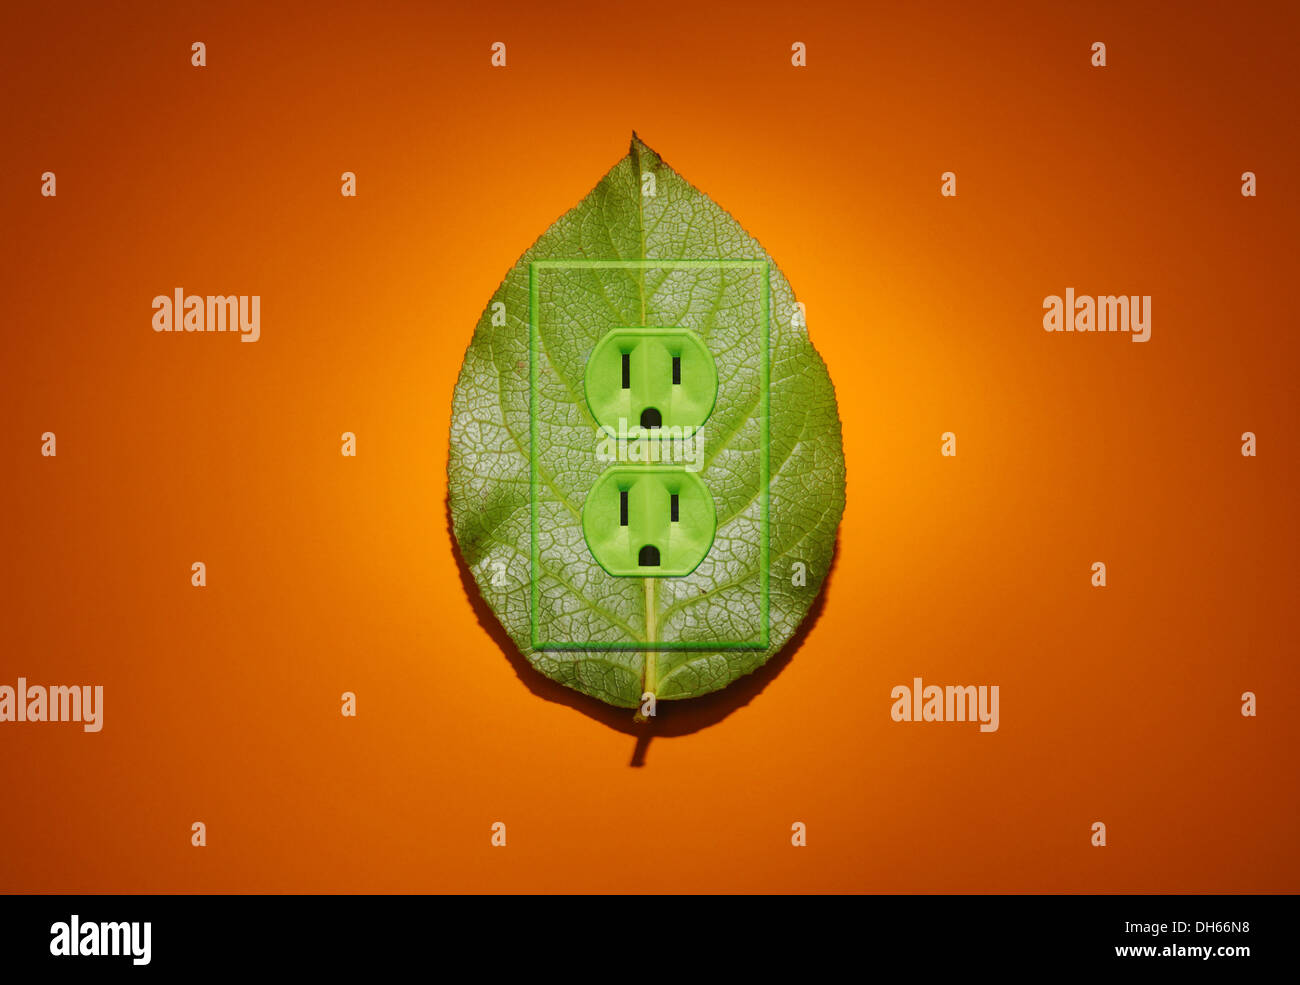 A green plant leaf with green colored electrical outlets added. Bright orange background - Stock Image